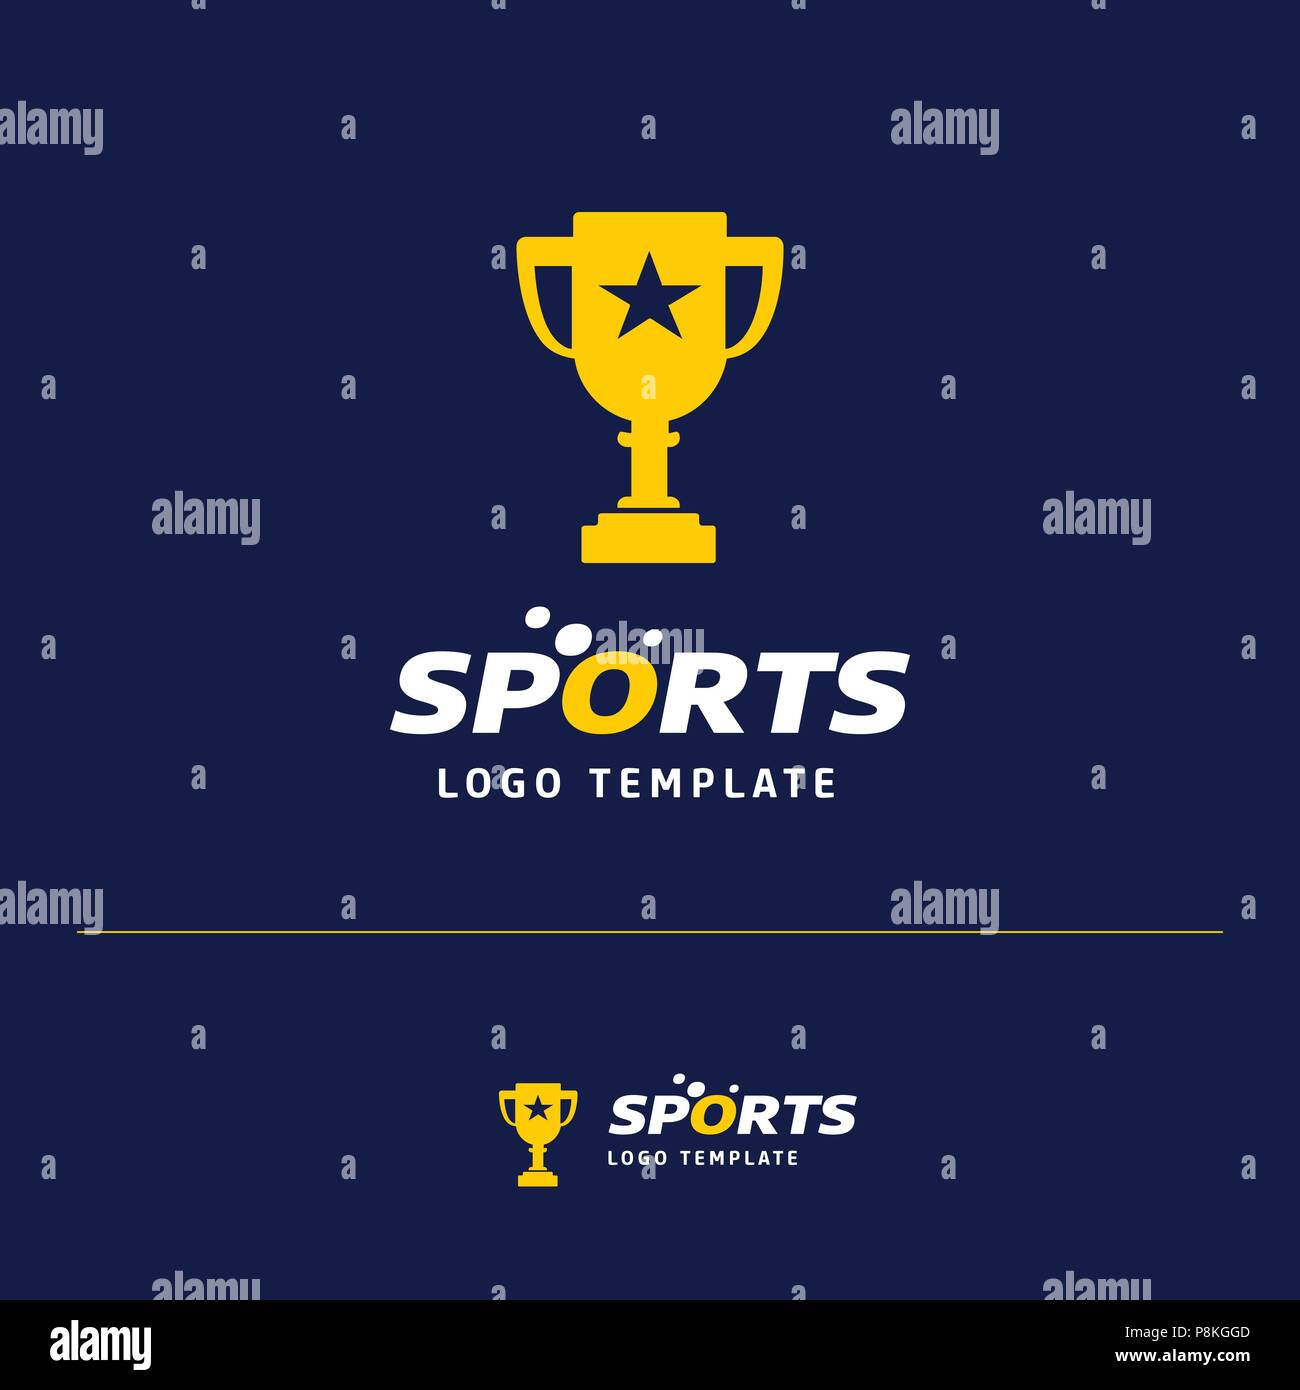 Business card design with sports logo and blue theme vector. For web ...